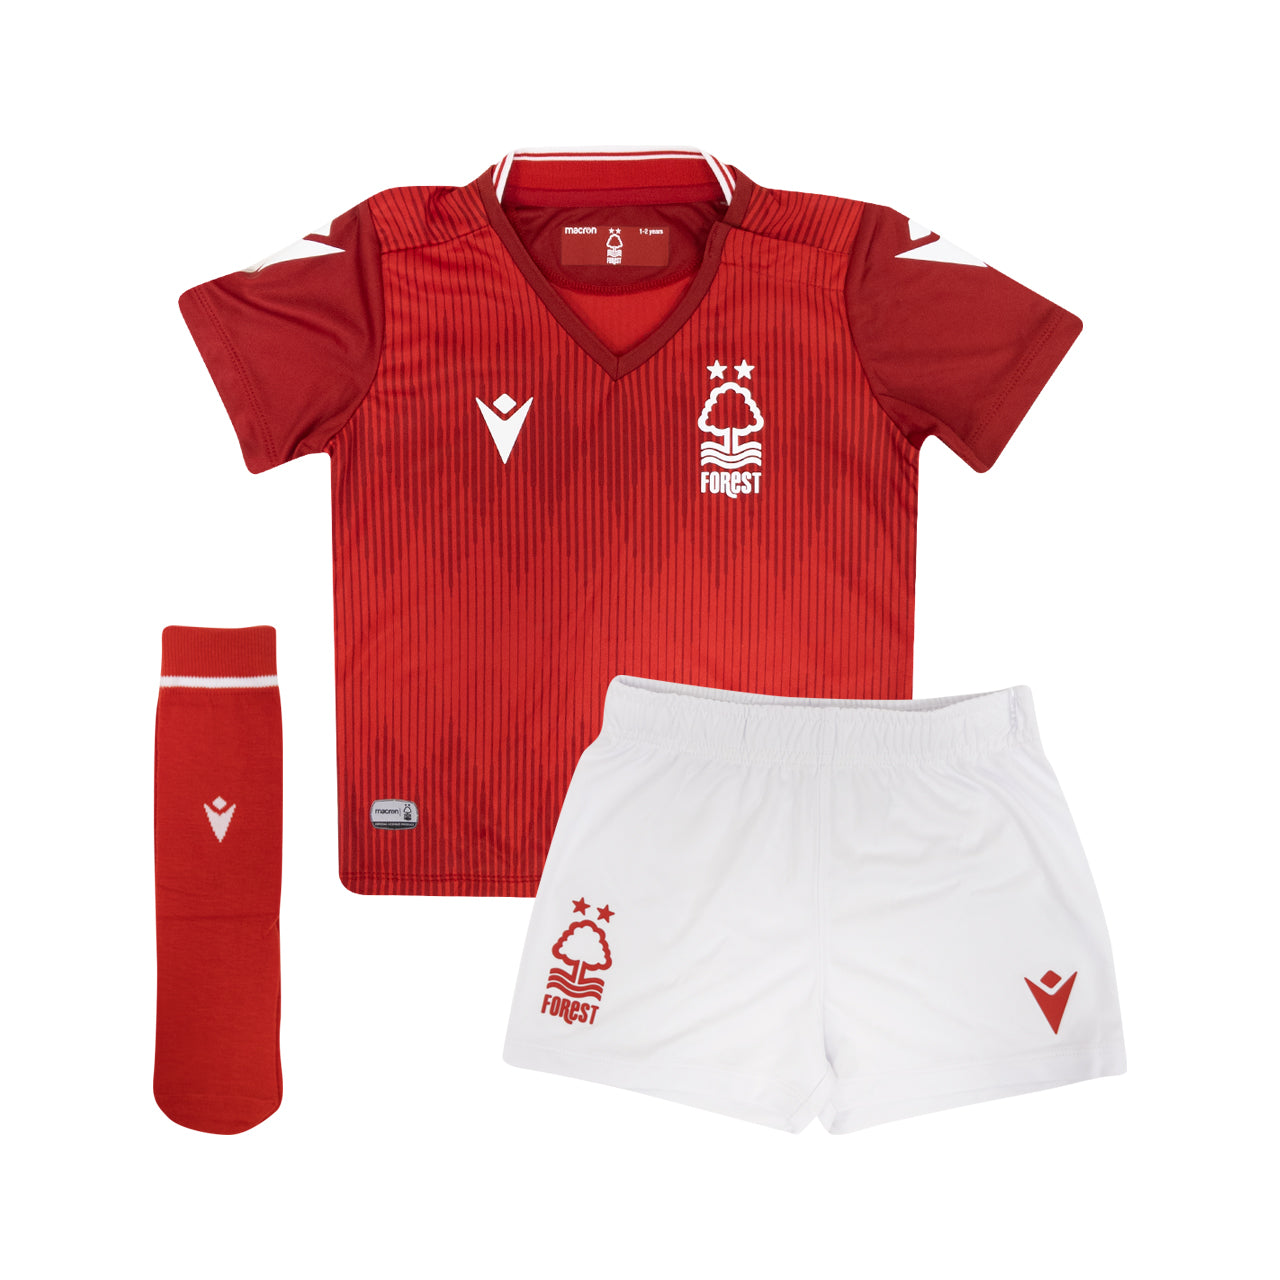 NFFC Baby Home Kit 2019/20